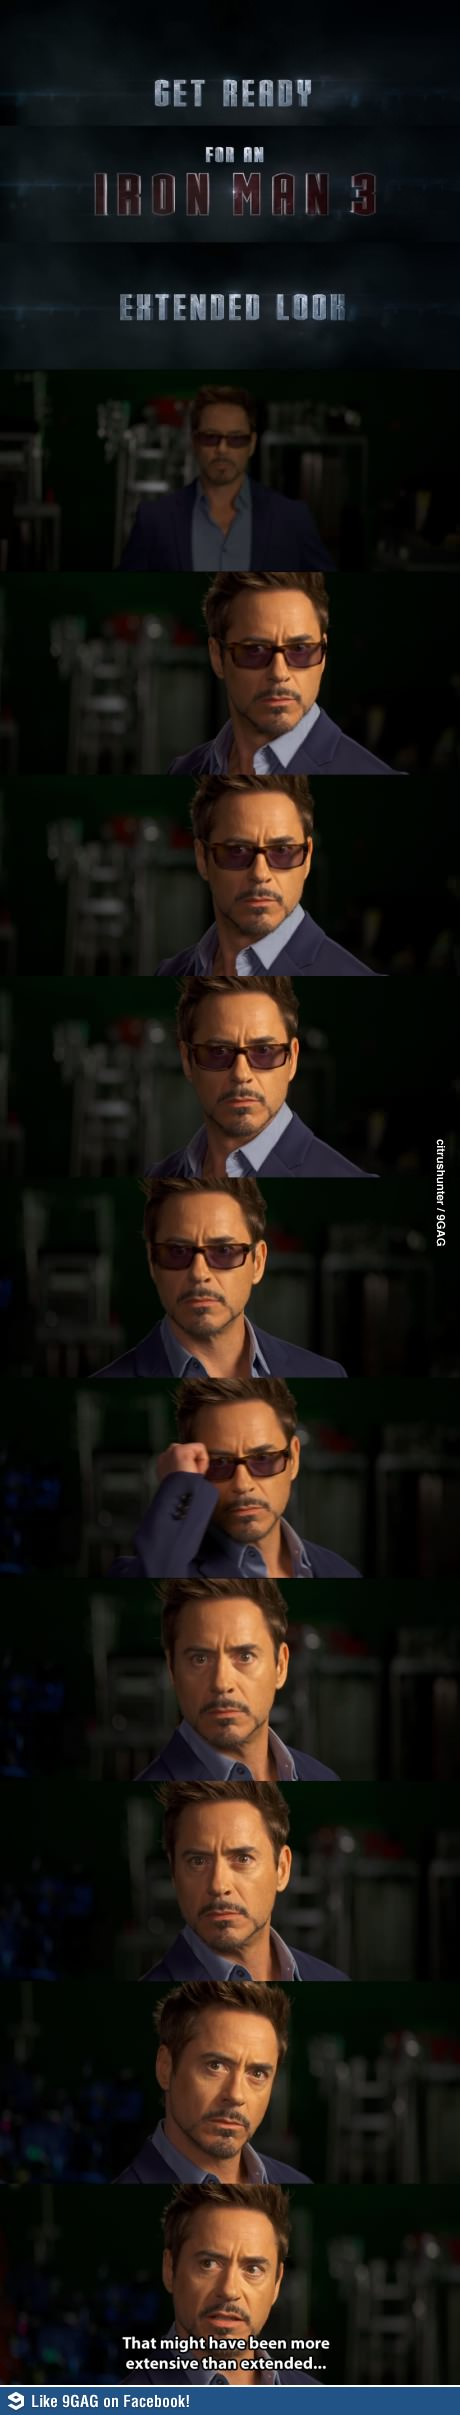 You know you enjoyed it. RDJ FTW